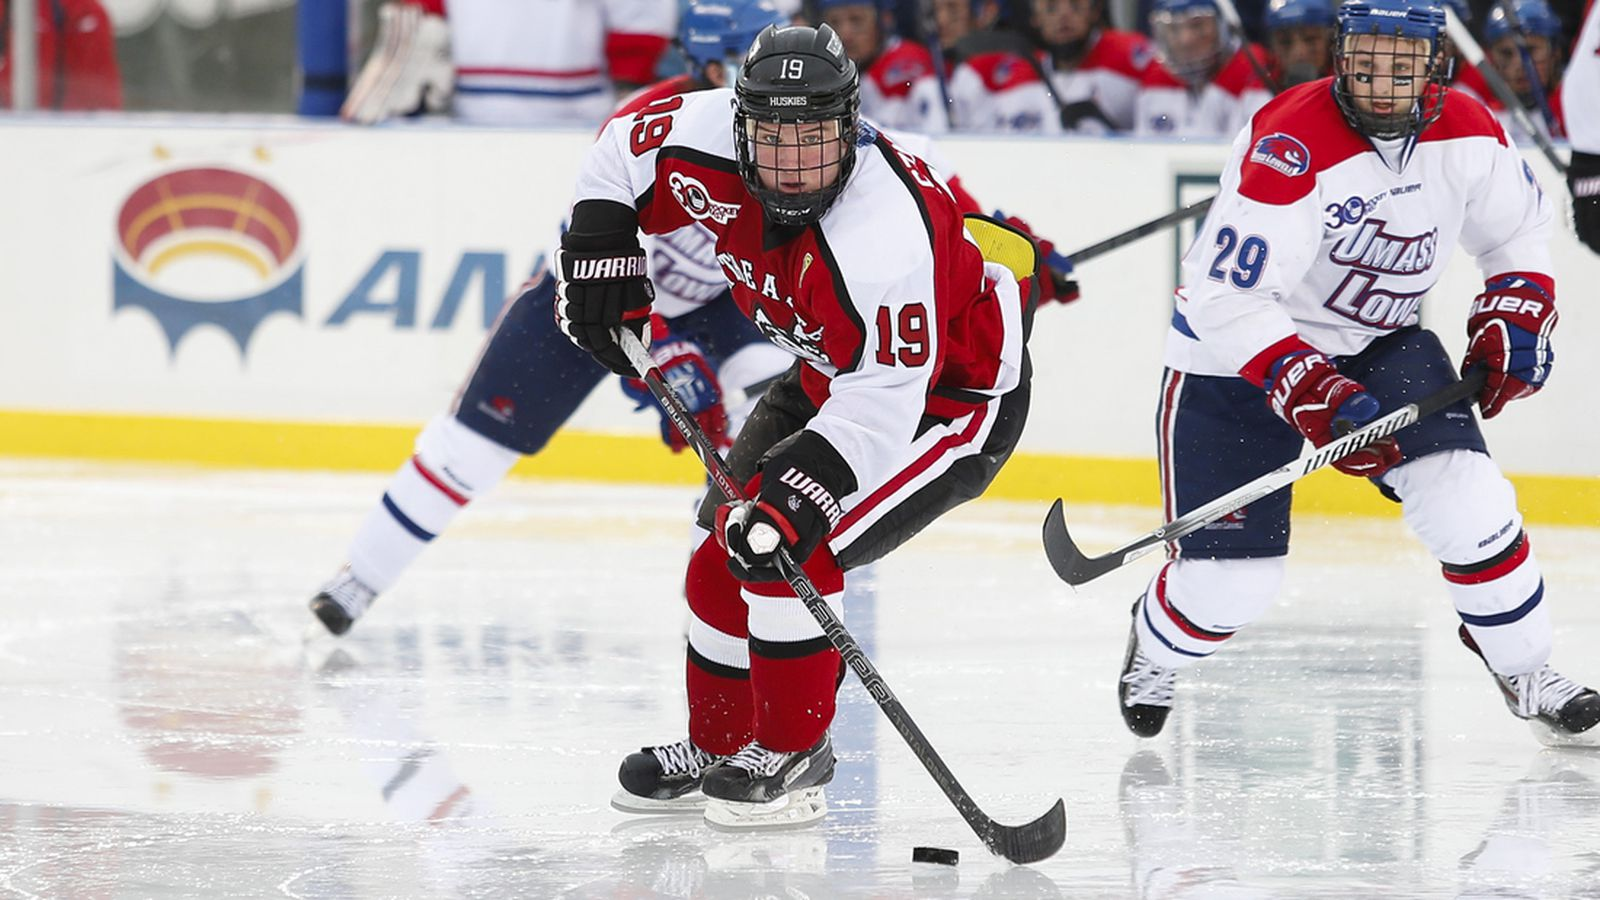 Vermont at Northeastern: Line Combinations - SB Nation ...